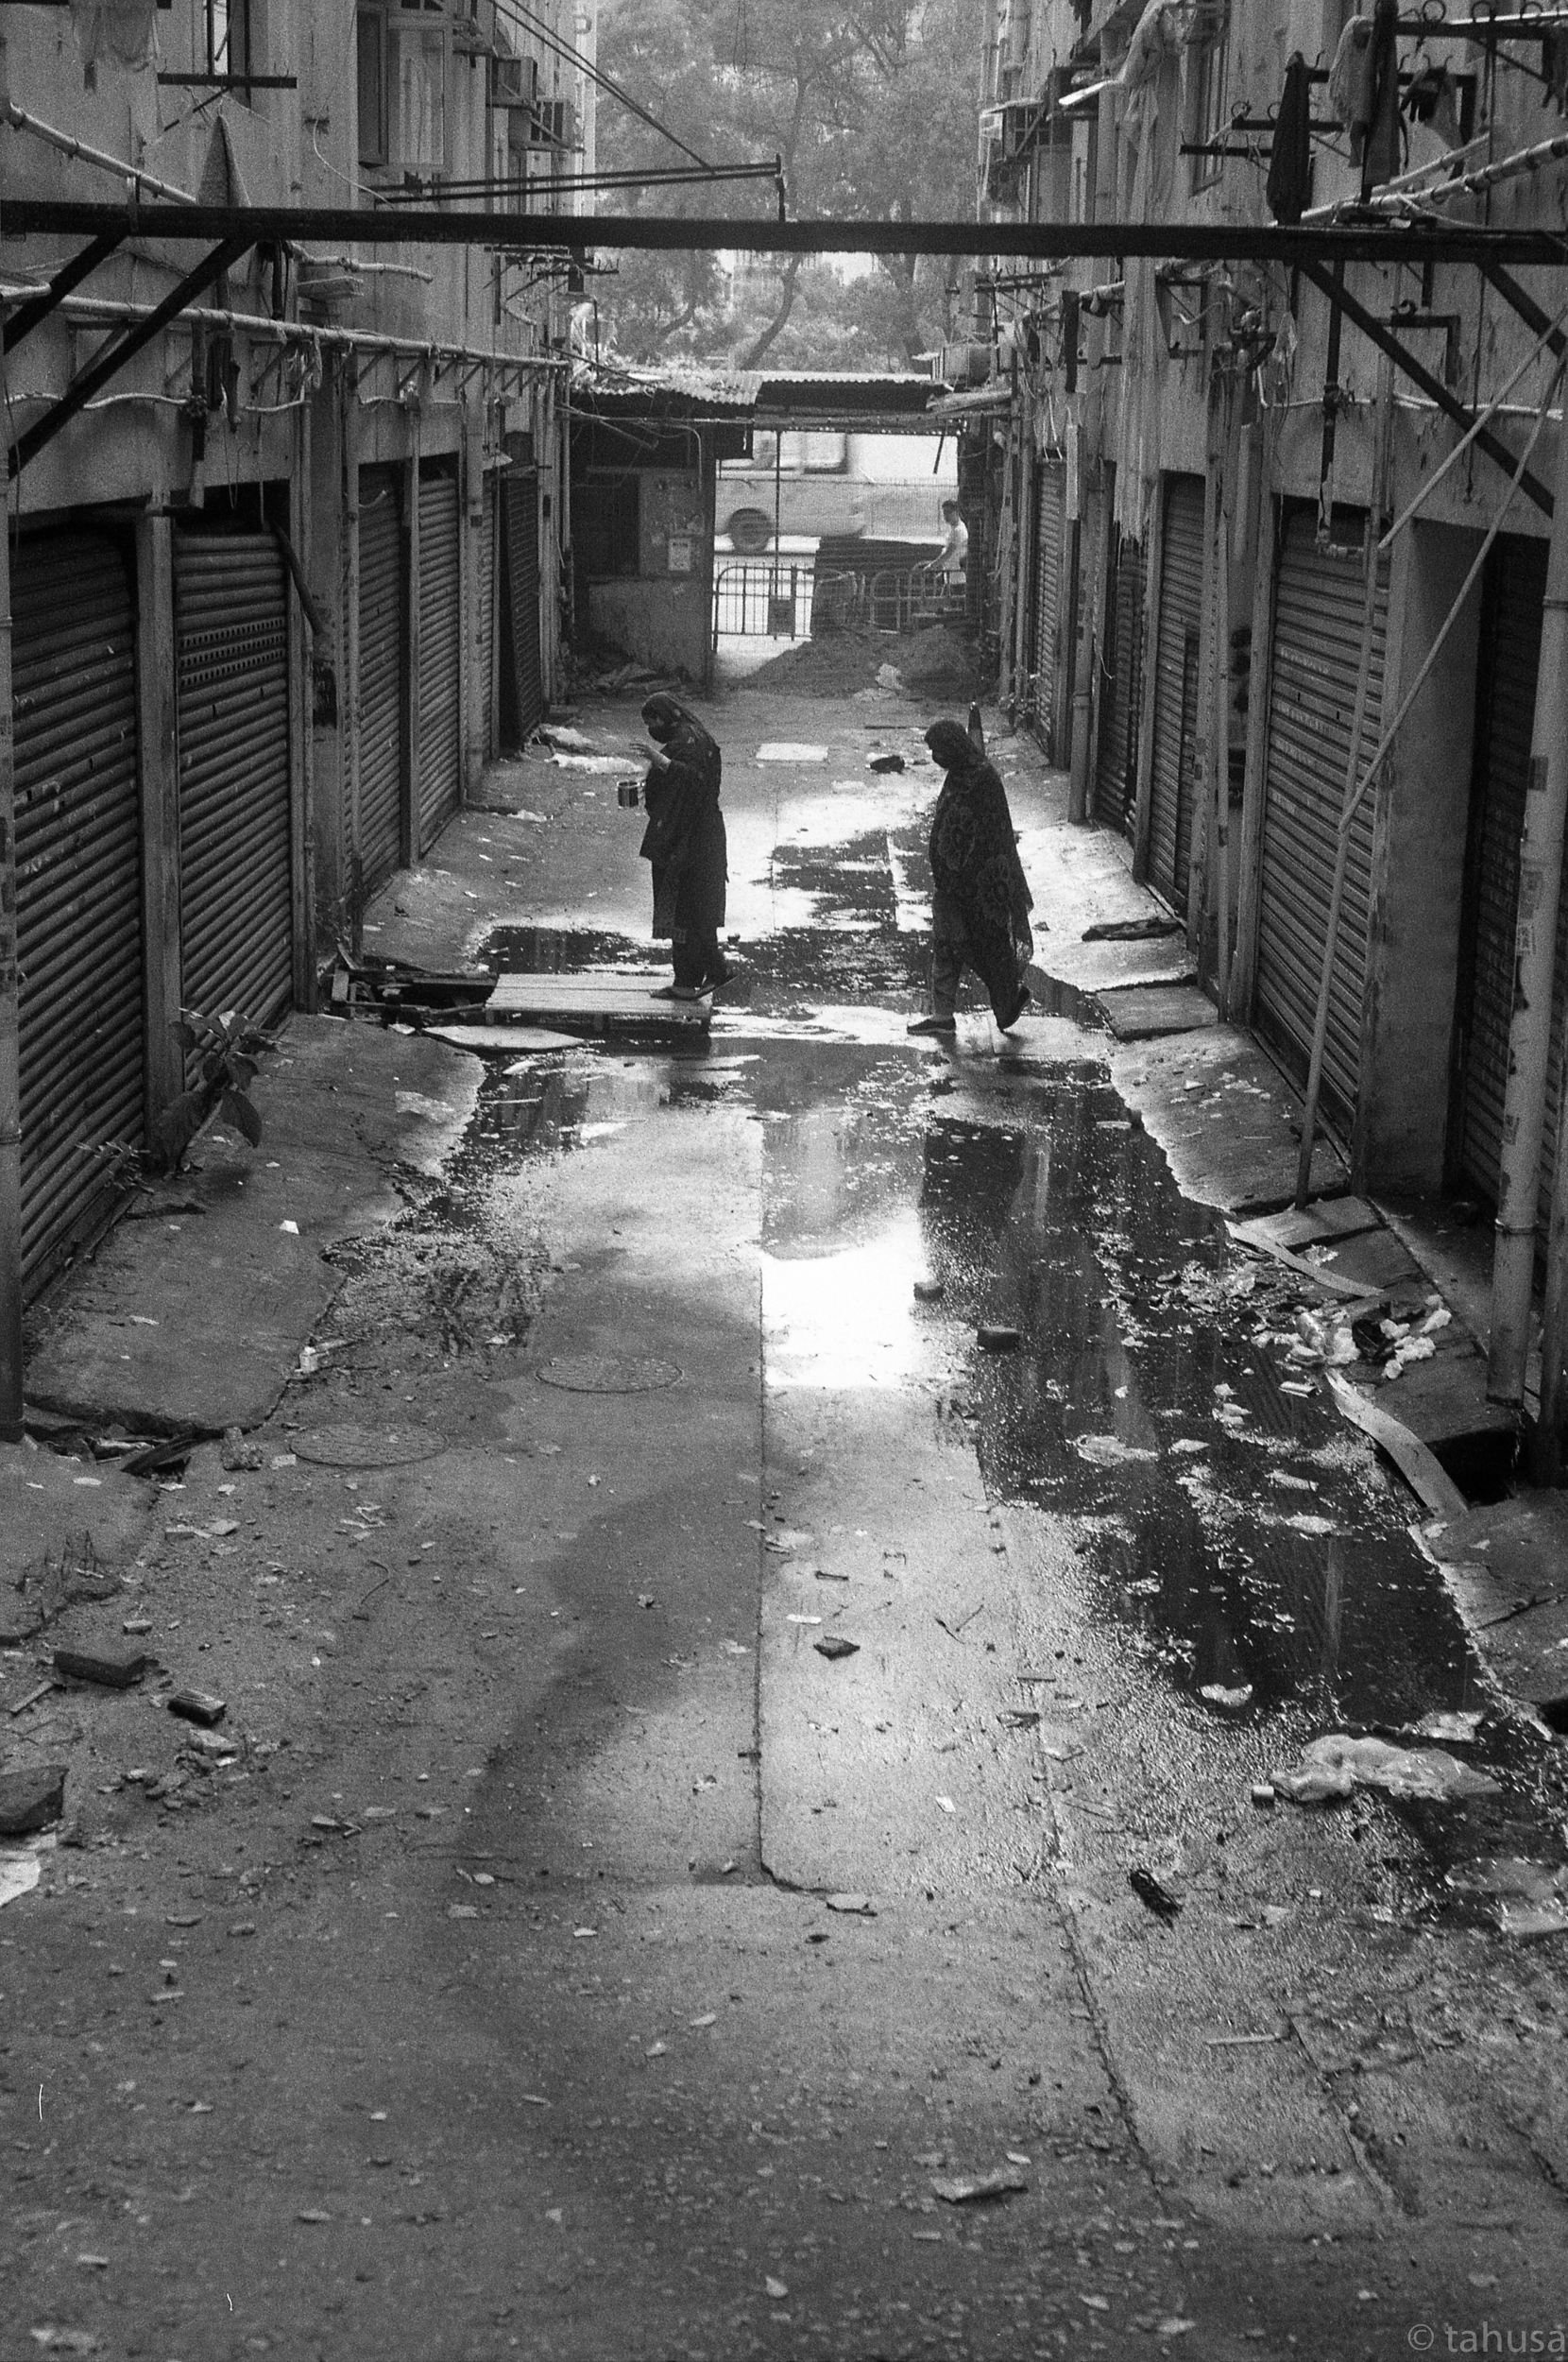 Rigid-summicron-50mm-f2-50-leica-Black-and-white-BW-B&W-film-analog-snap-snapshot-Kentmere-Film-DDX-Ilford-Hong-Kong-Minorities-Slum